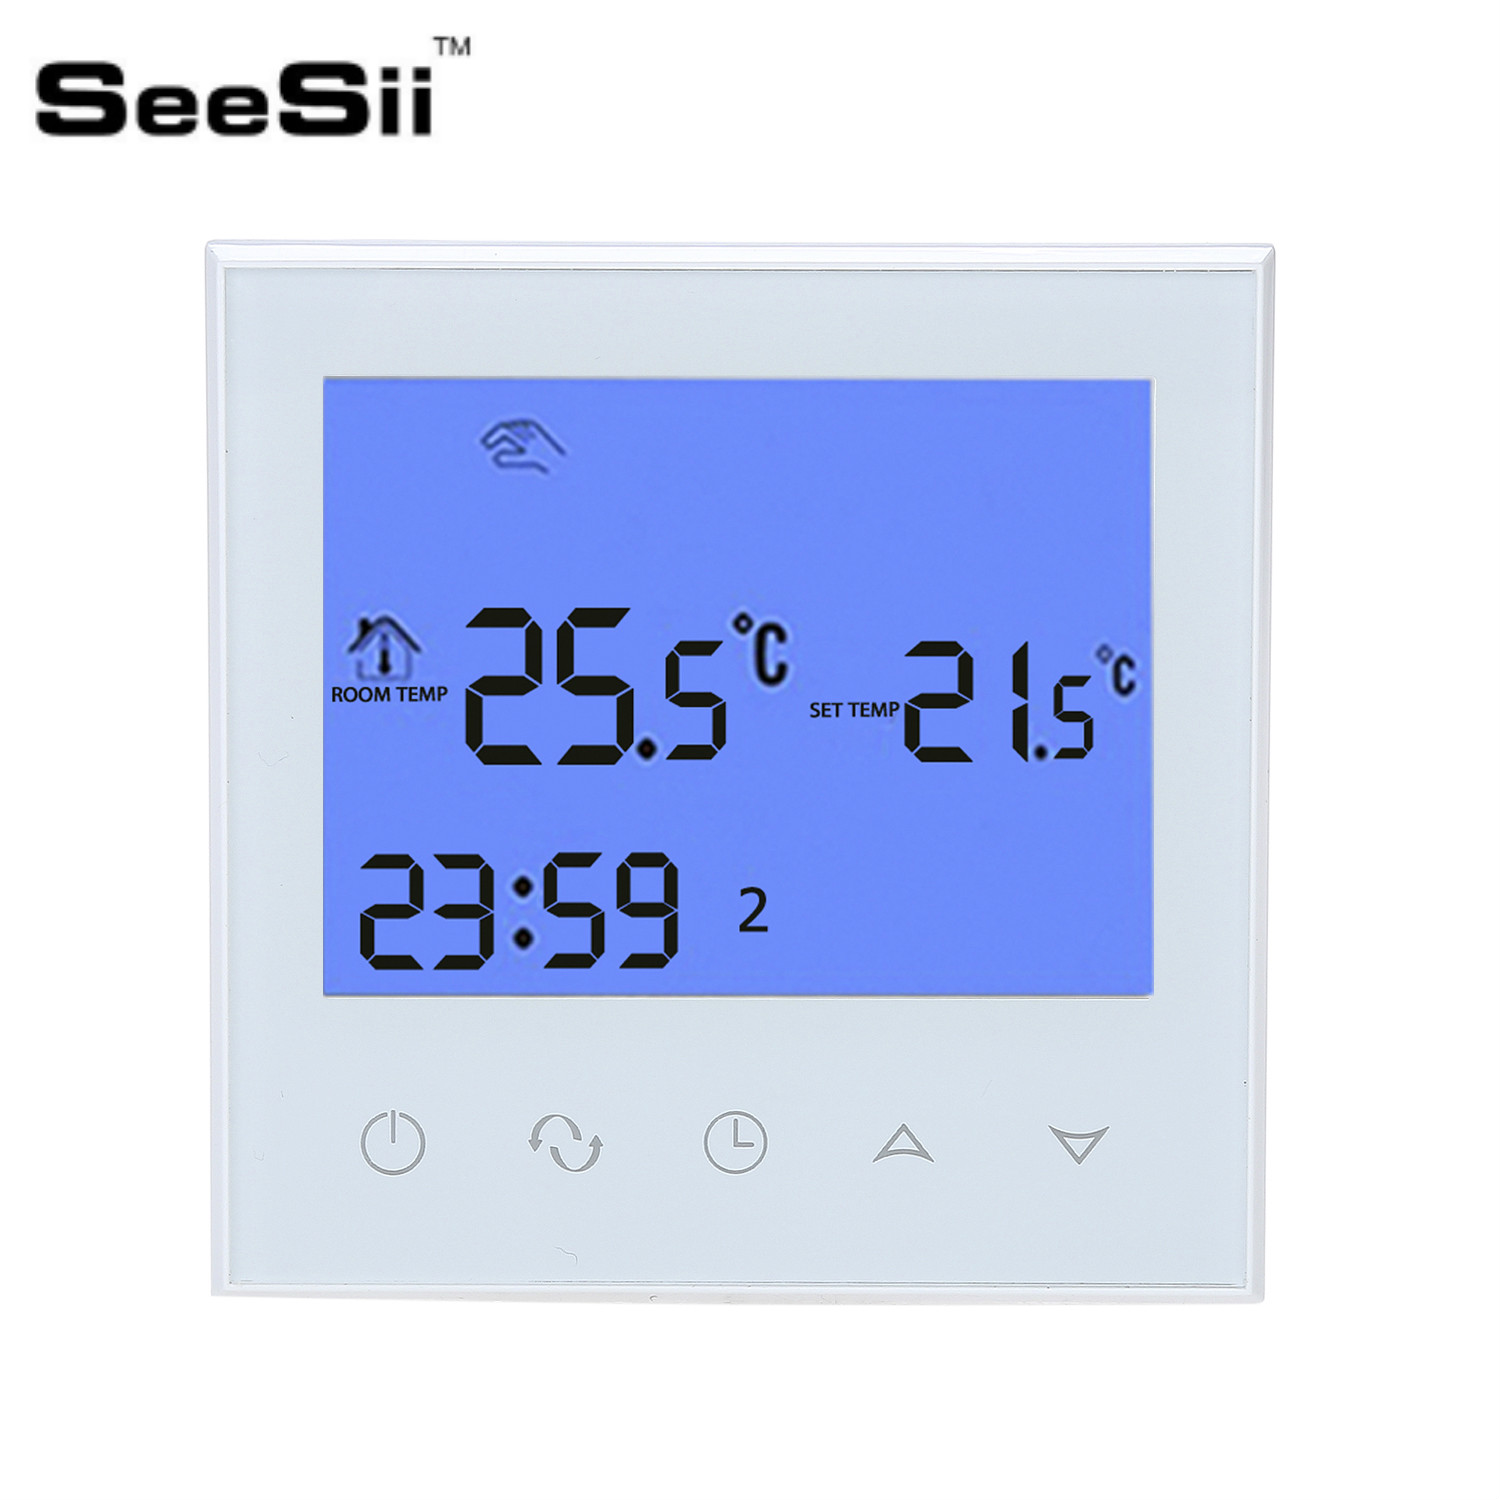 5pcs/lot DHL shipping SeeSii Programmable Thermostat Heating WiFi LCD Touch Screen Temperature Control Underfloor 16A 230V 30pcs lot free shipping dhl me173 new original touch screen